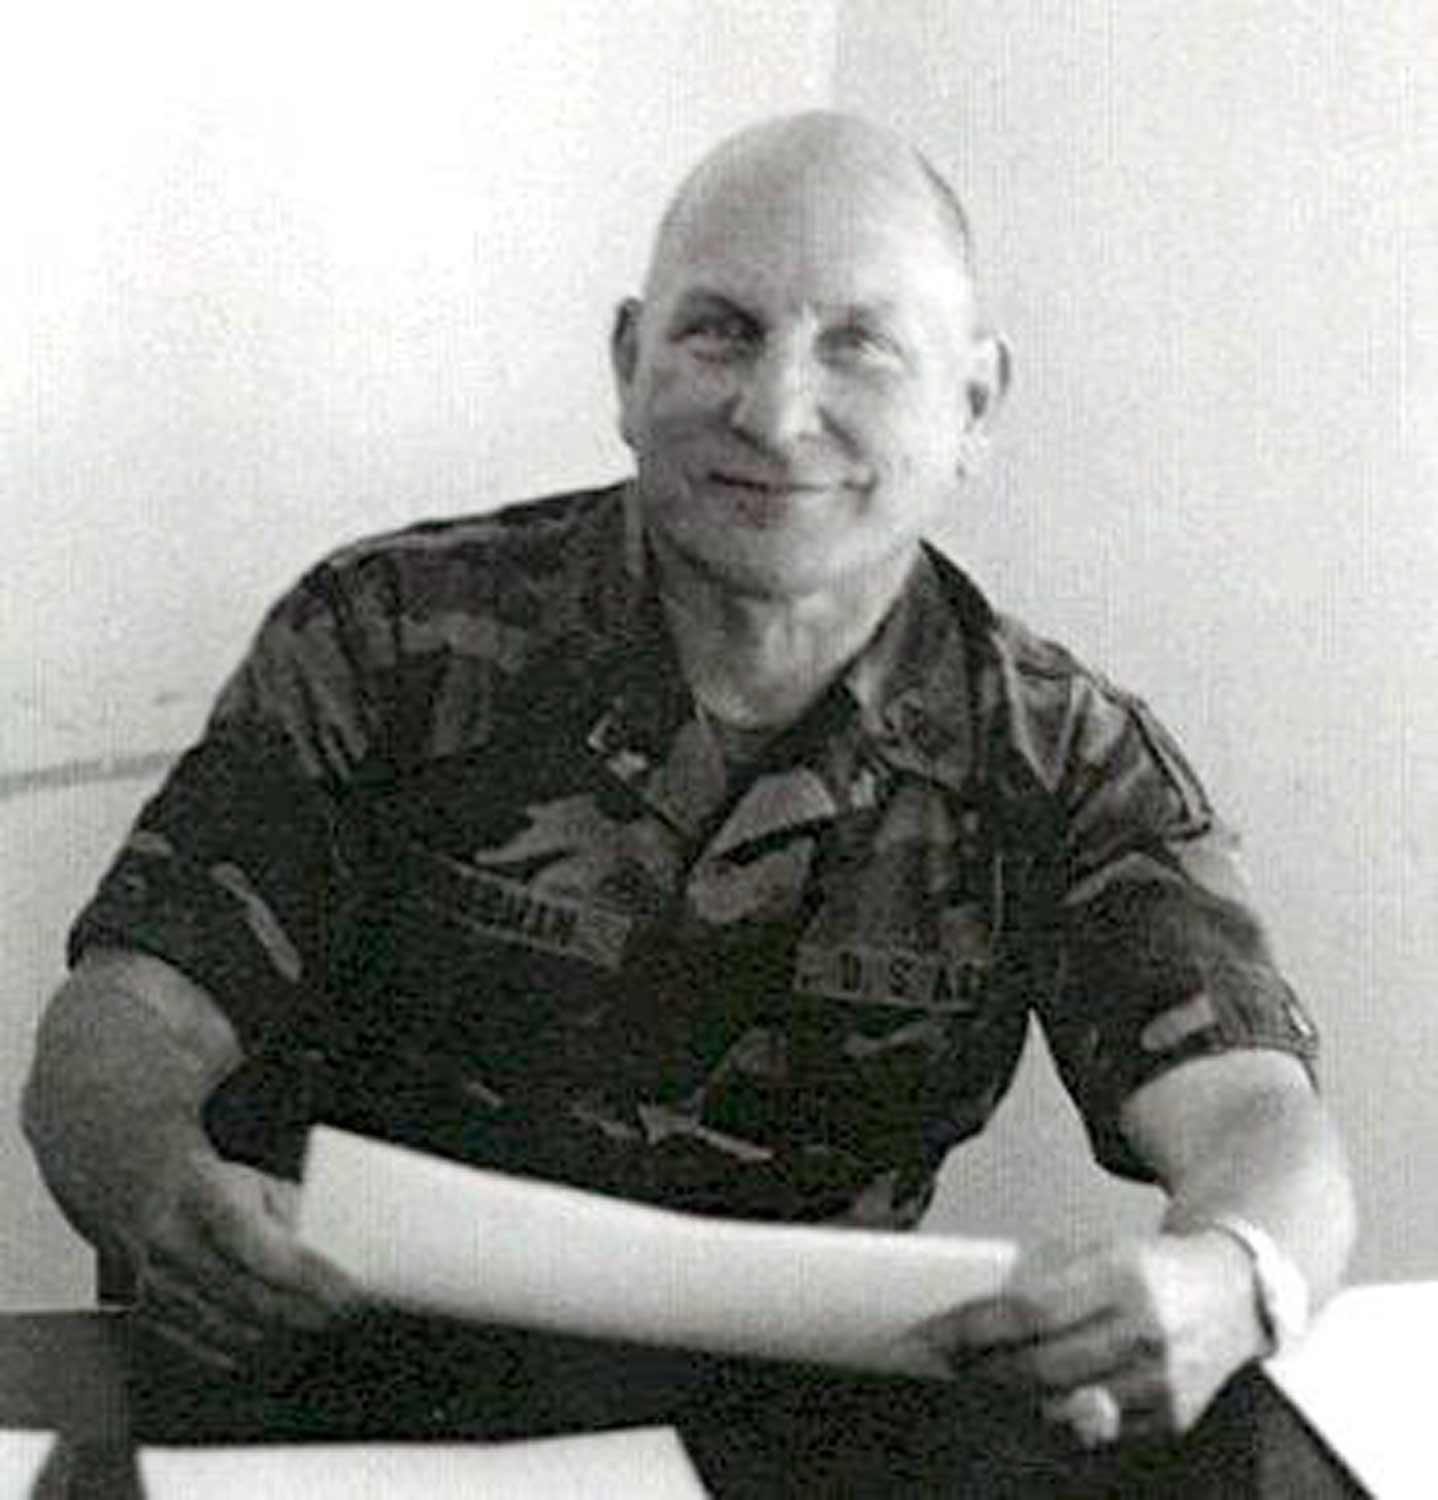 SGM Herb Friedman (ret.) during his military service.Image courtesy of  http://www.psywarrior.com